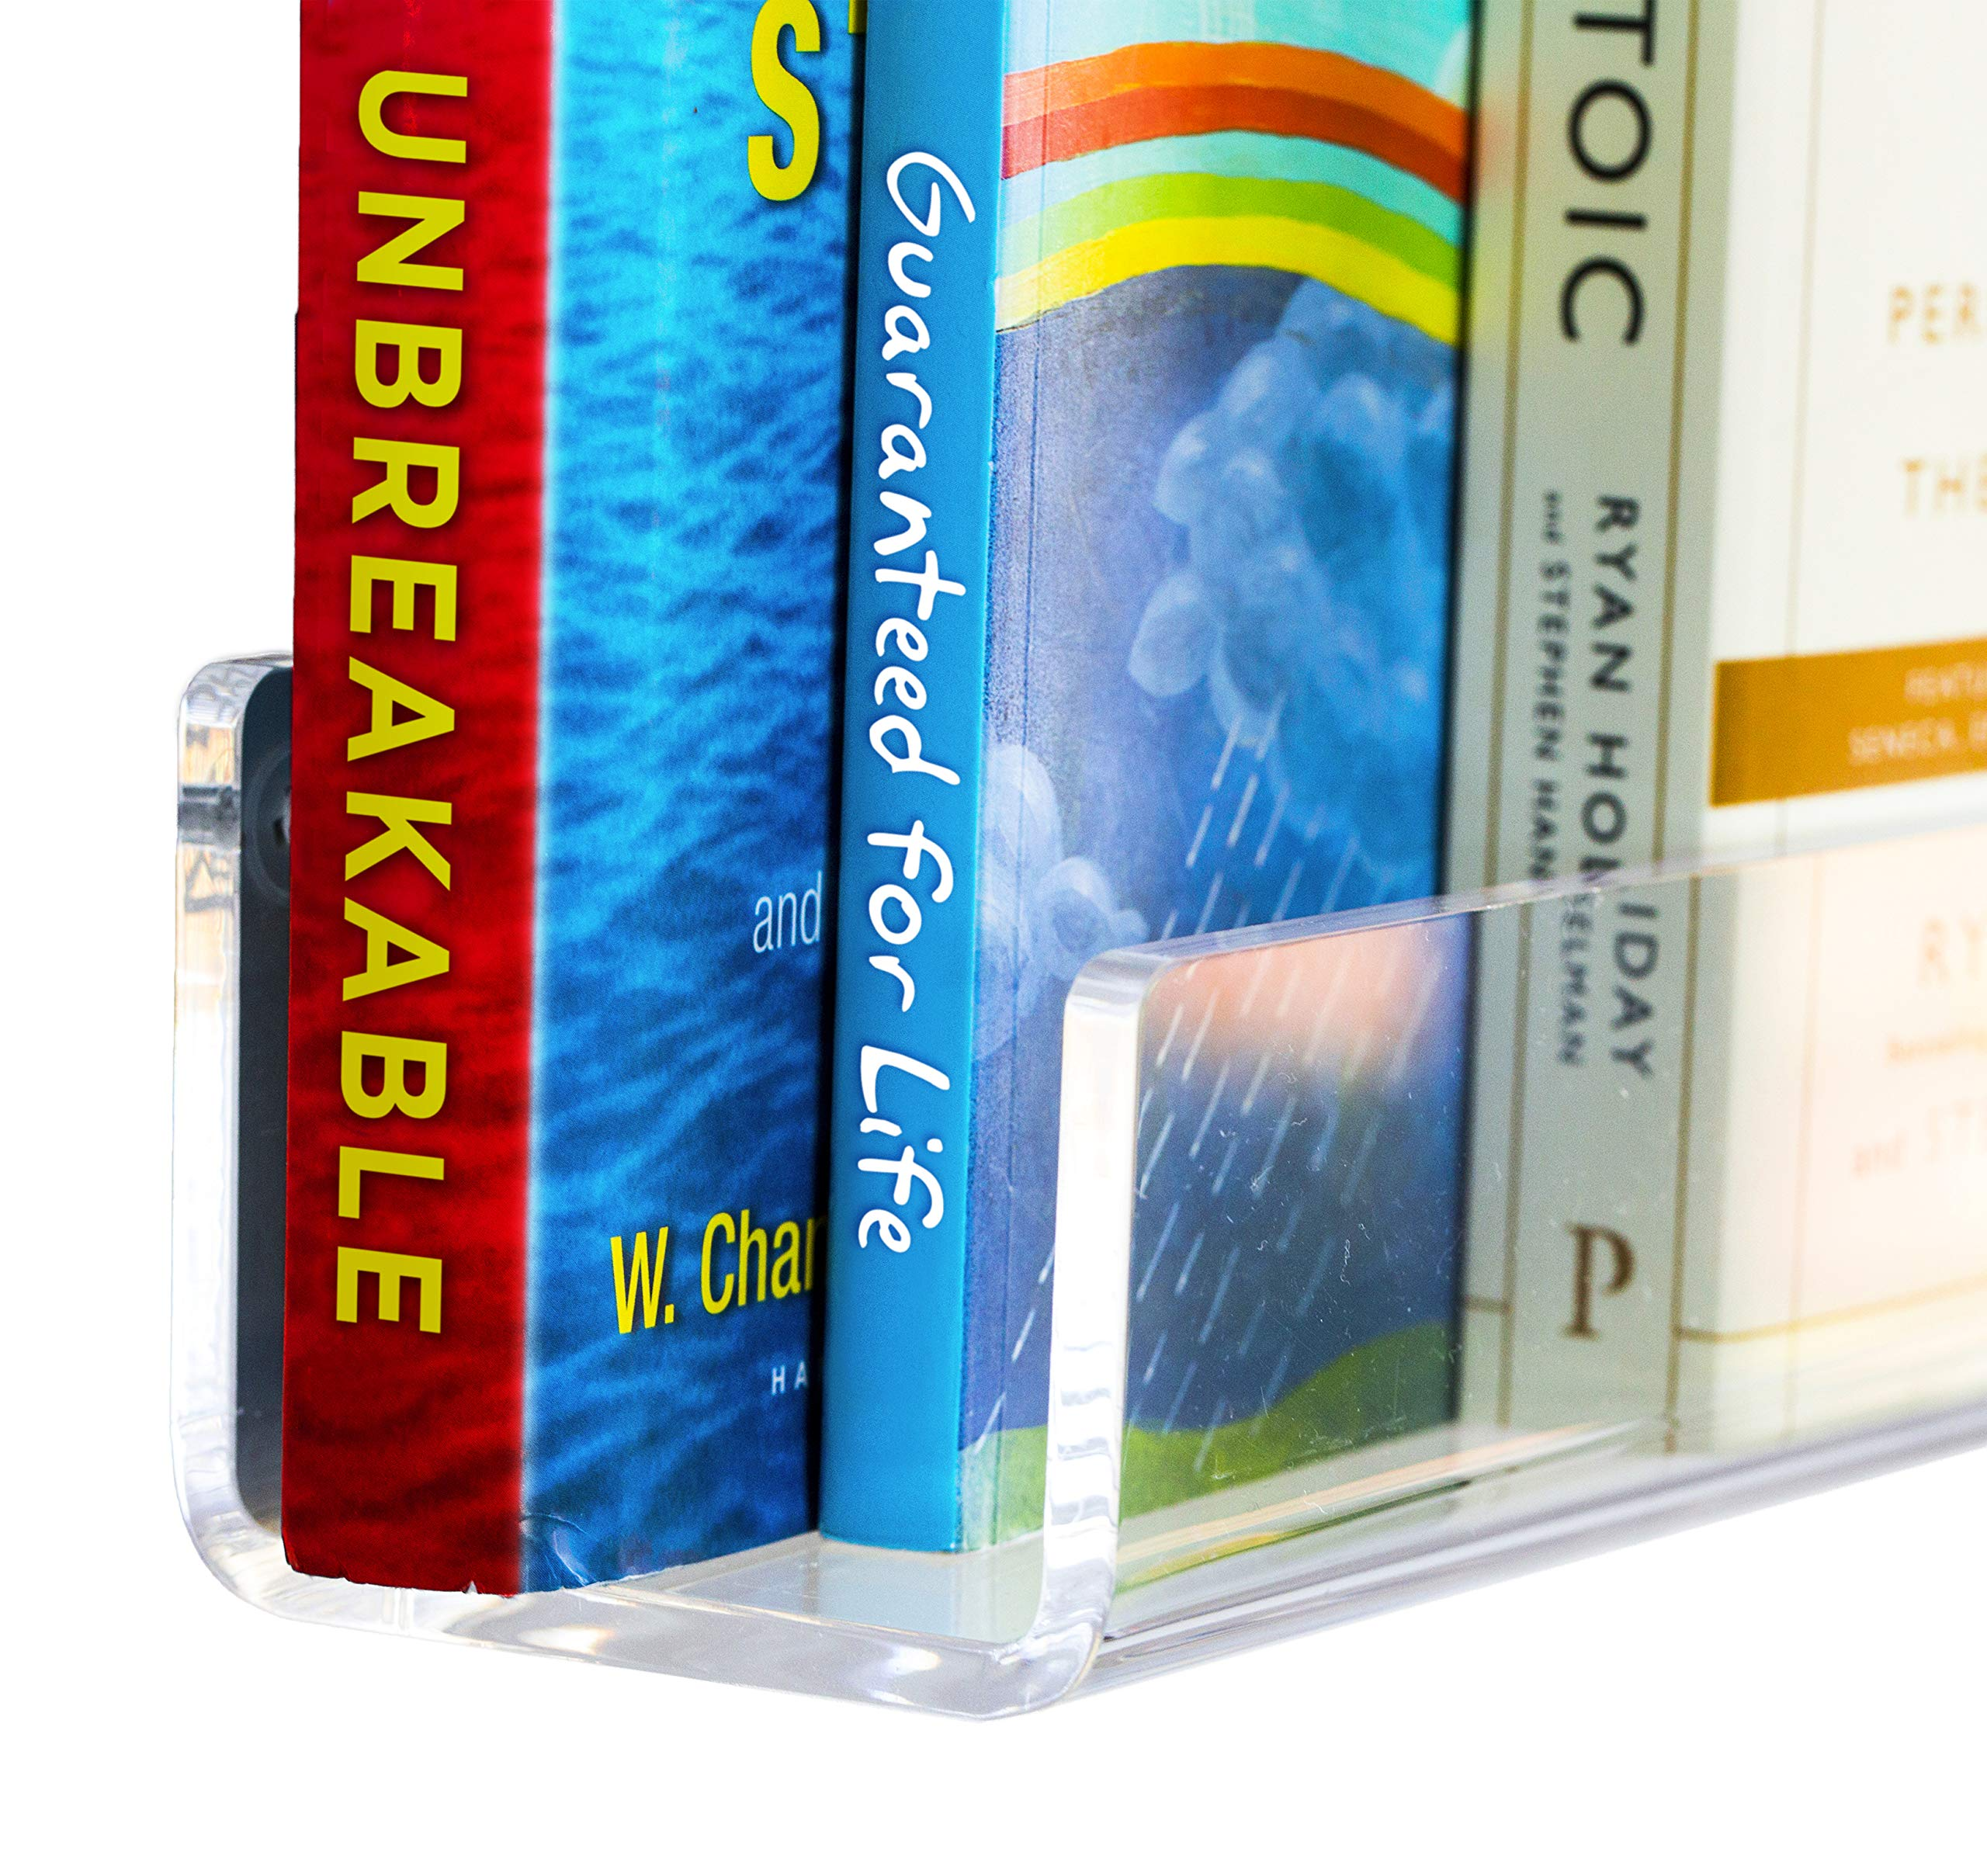 CLOUDZERO Acrylic Bookshelf. Unbreakable 26 inch Bookshelves. 6mm 1/4 inch Thick. 3 Lengths Available: 16/26/38 inch; Replace Your Bookcase with Acrylic Shelves. Gift Boxed. Hardware incl